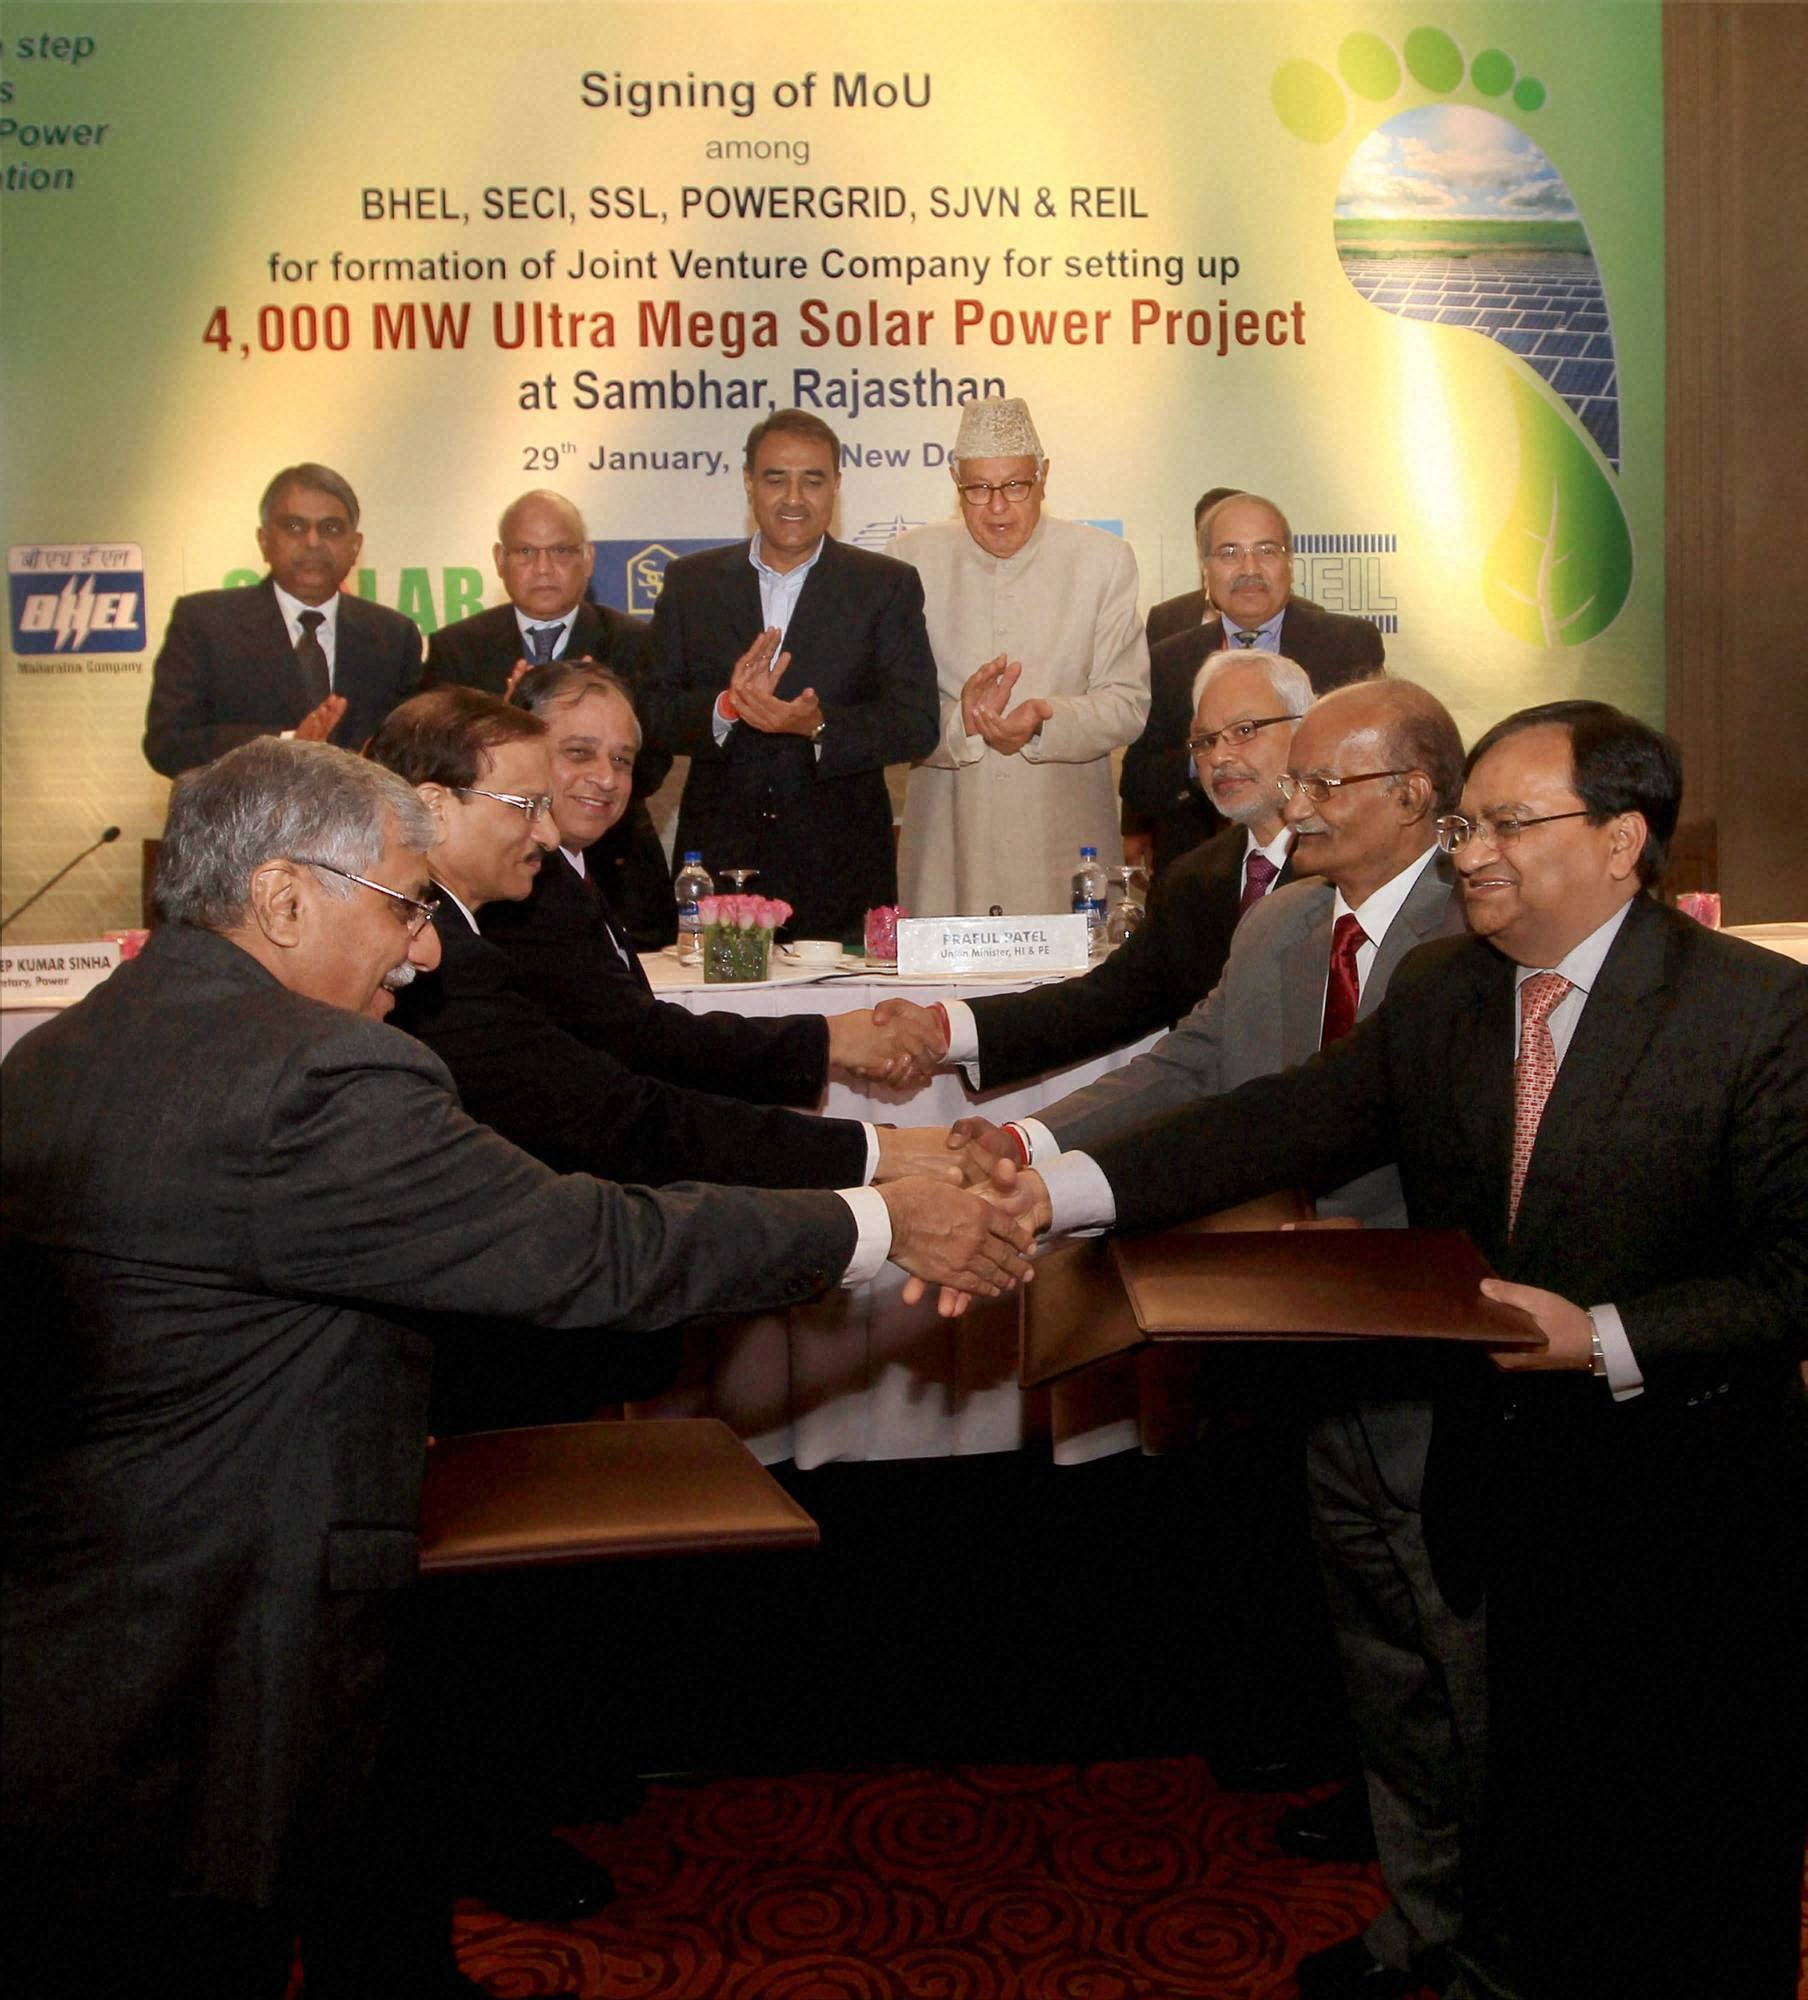 Union Minister of New and Renewable Energy (MNRE) Farooq Abdullah and Union Minister for Heavy Industries and Public Enterprises, Praful Patel witness the signing of MoU among BHEL, SECI, SSL, POWERGRID, SJVN & REIL for formation of Joint Venture Company Mega Solar Power Project at Sambhar, Rajasthan, in New Delhi on Wednesday